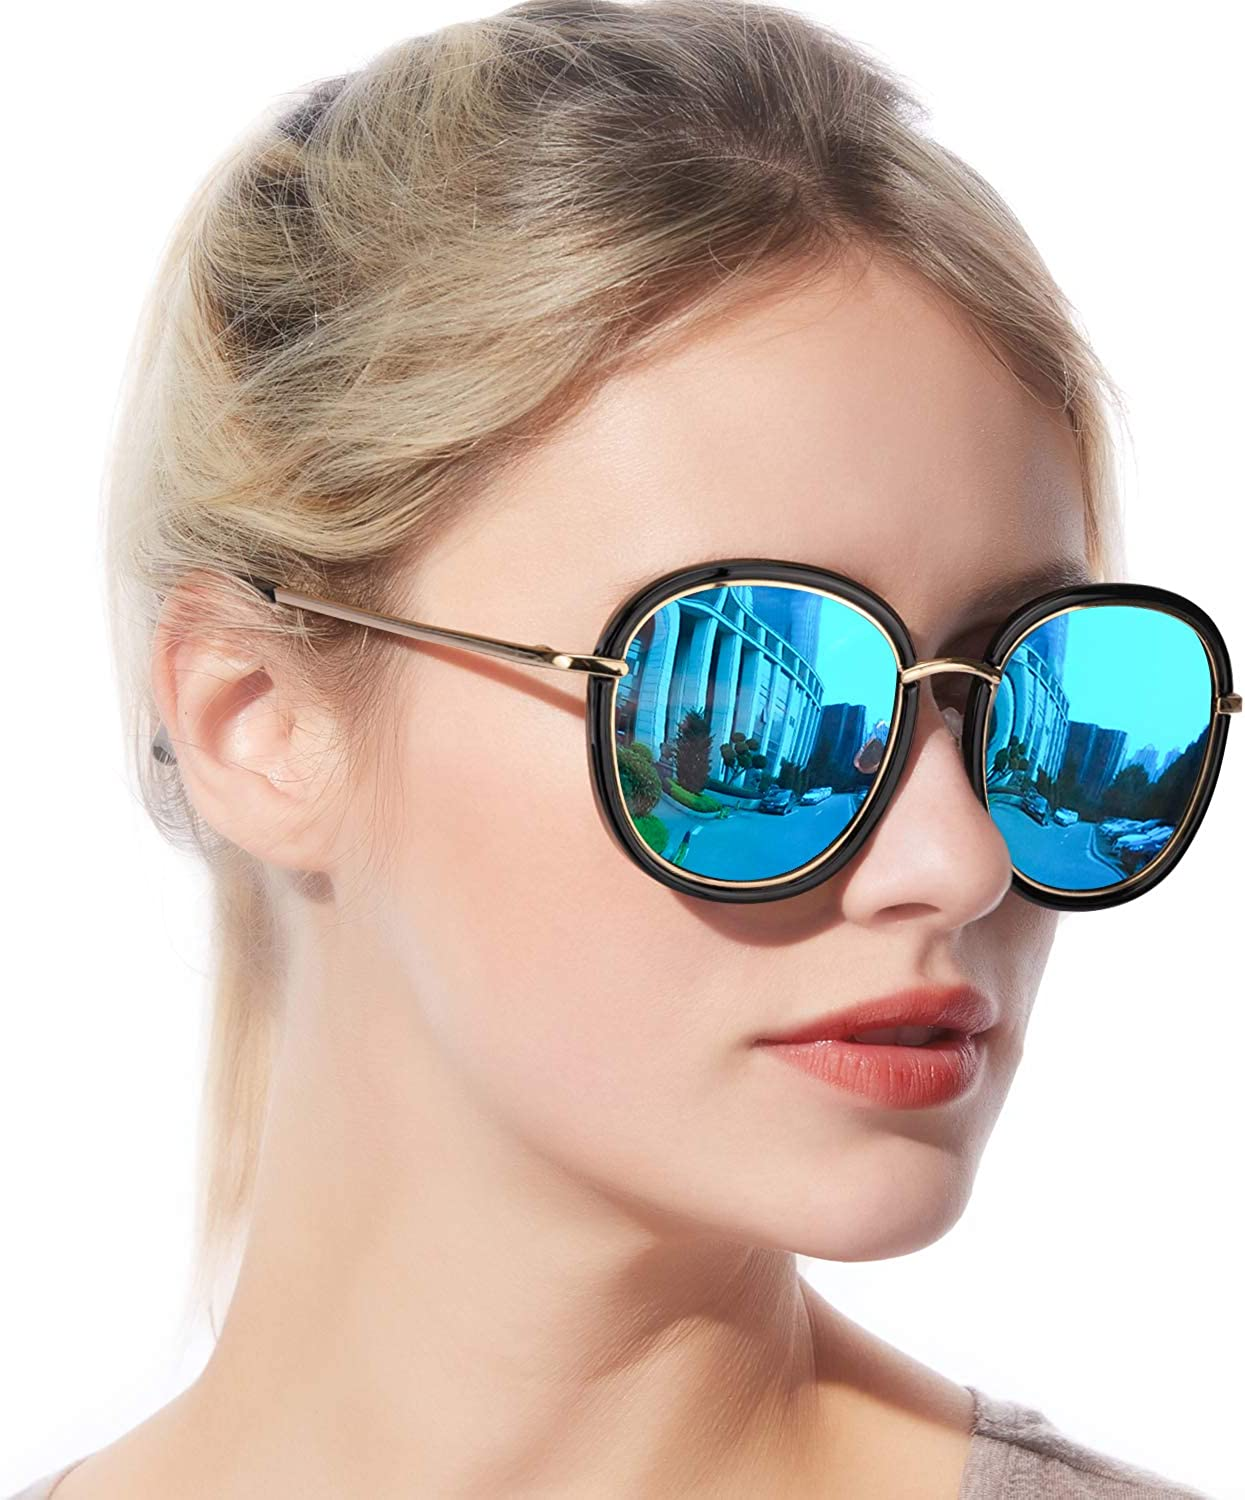 Enafad Womens Oversized Round Polarized Sunglasses, Fashion Vintage Polarized Eyewear for Driving Fishing  UV400 Predection